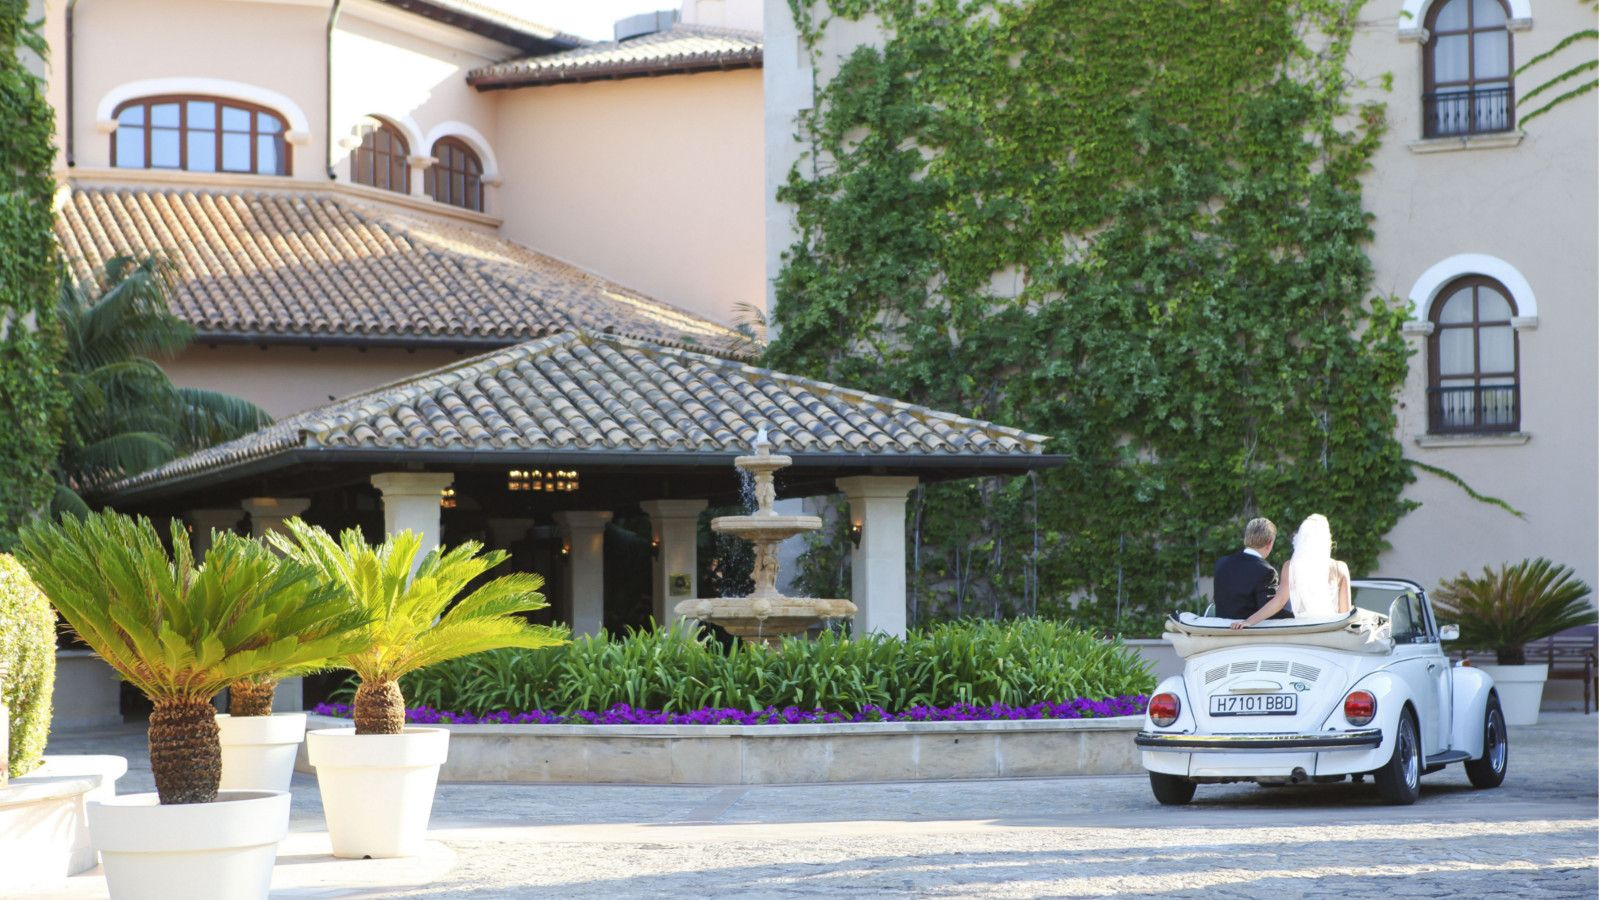 A memorable journey at The St. Regis Mardavall Mallorca Resort